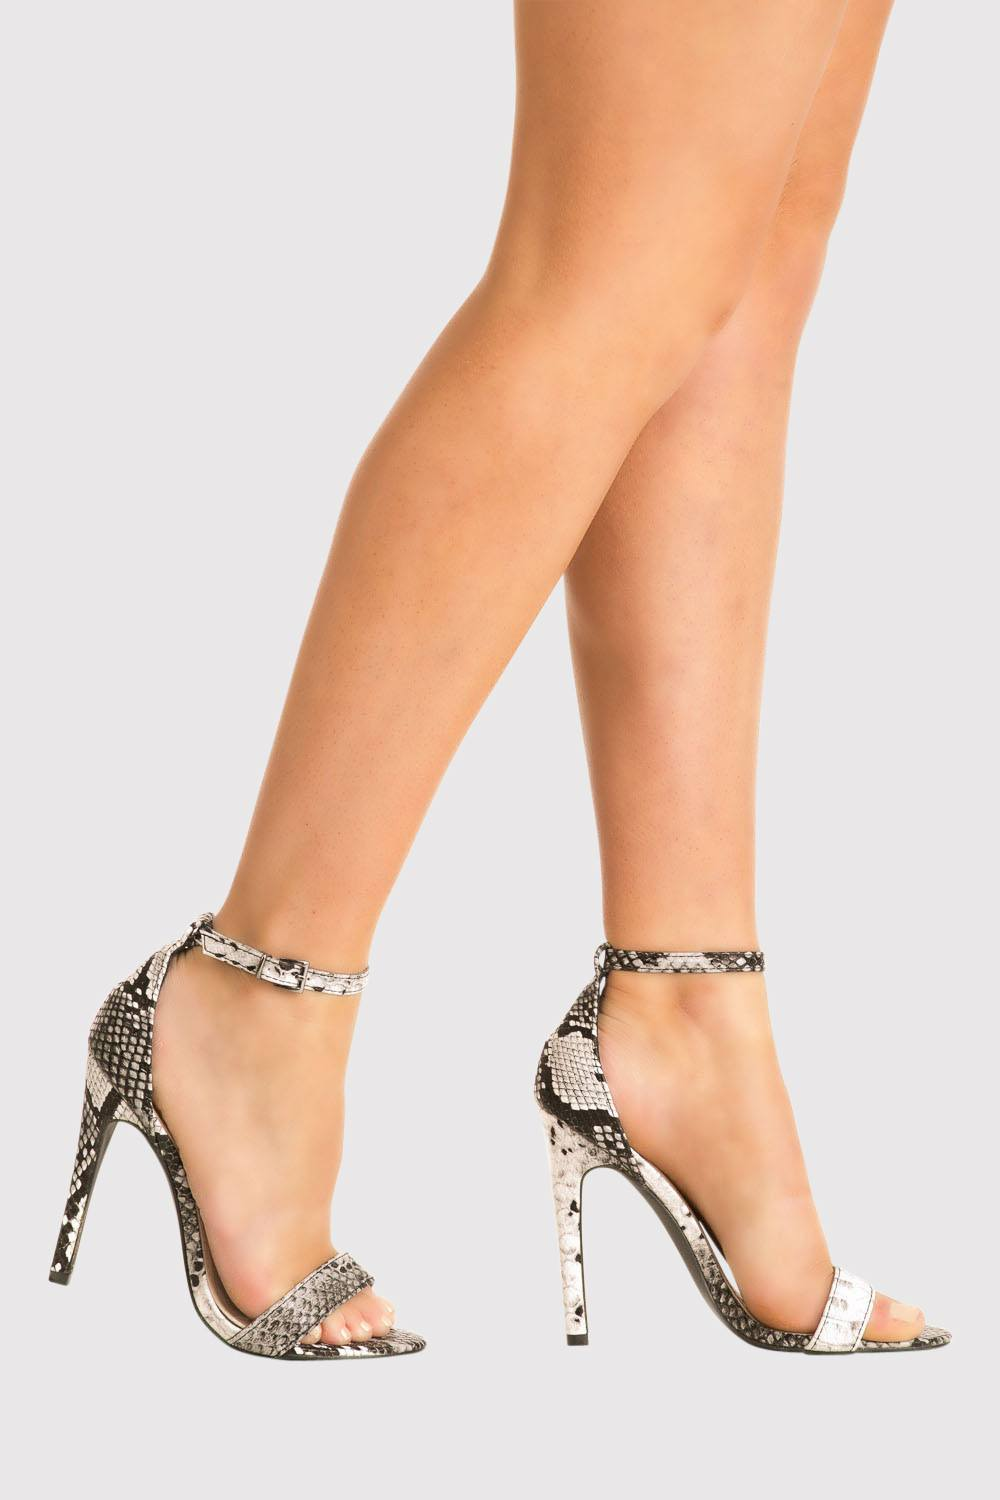 Shona Barely There Strappy High Heel Snake Print Sandals in Grey MODEL SIDE